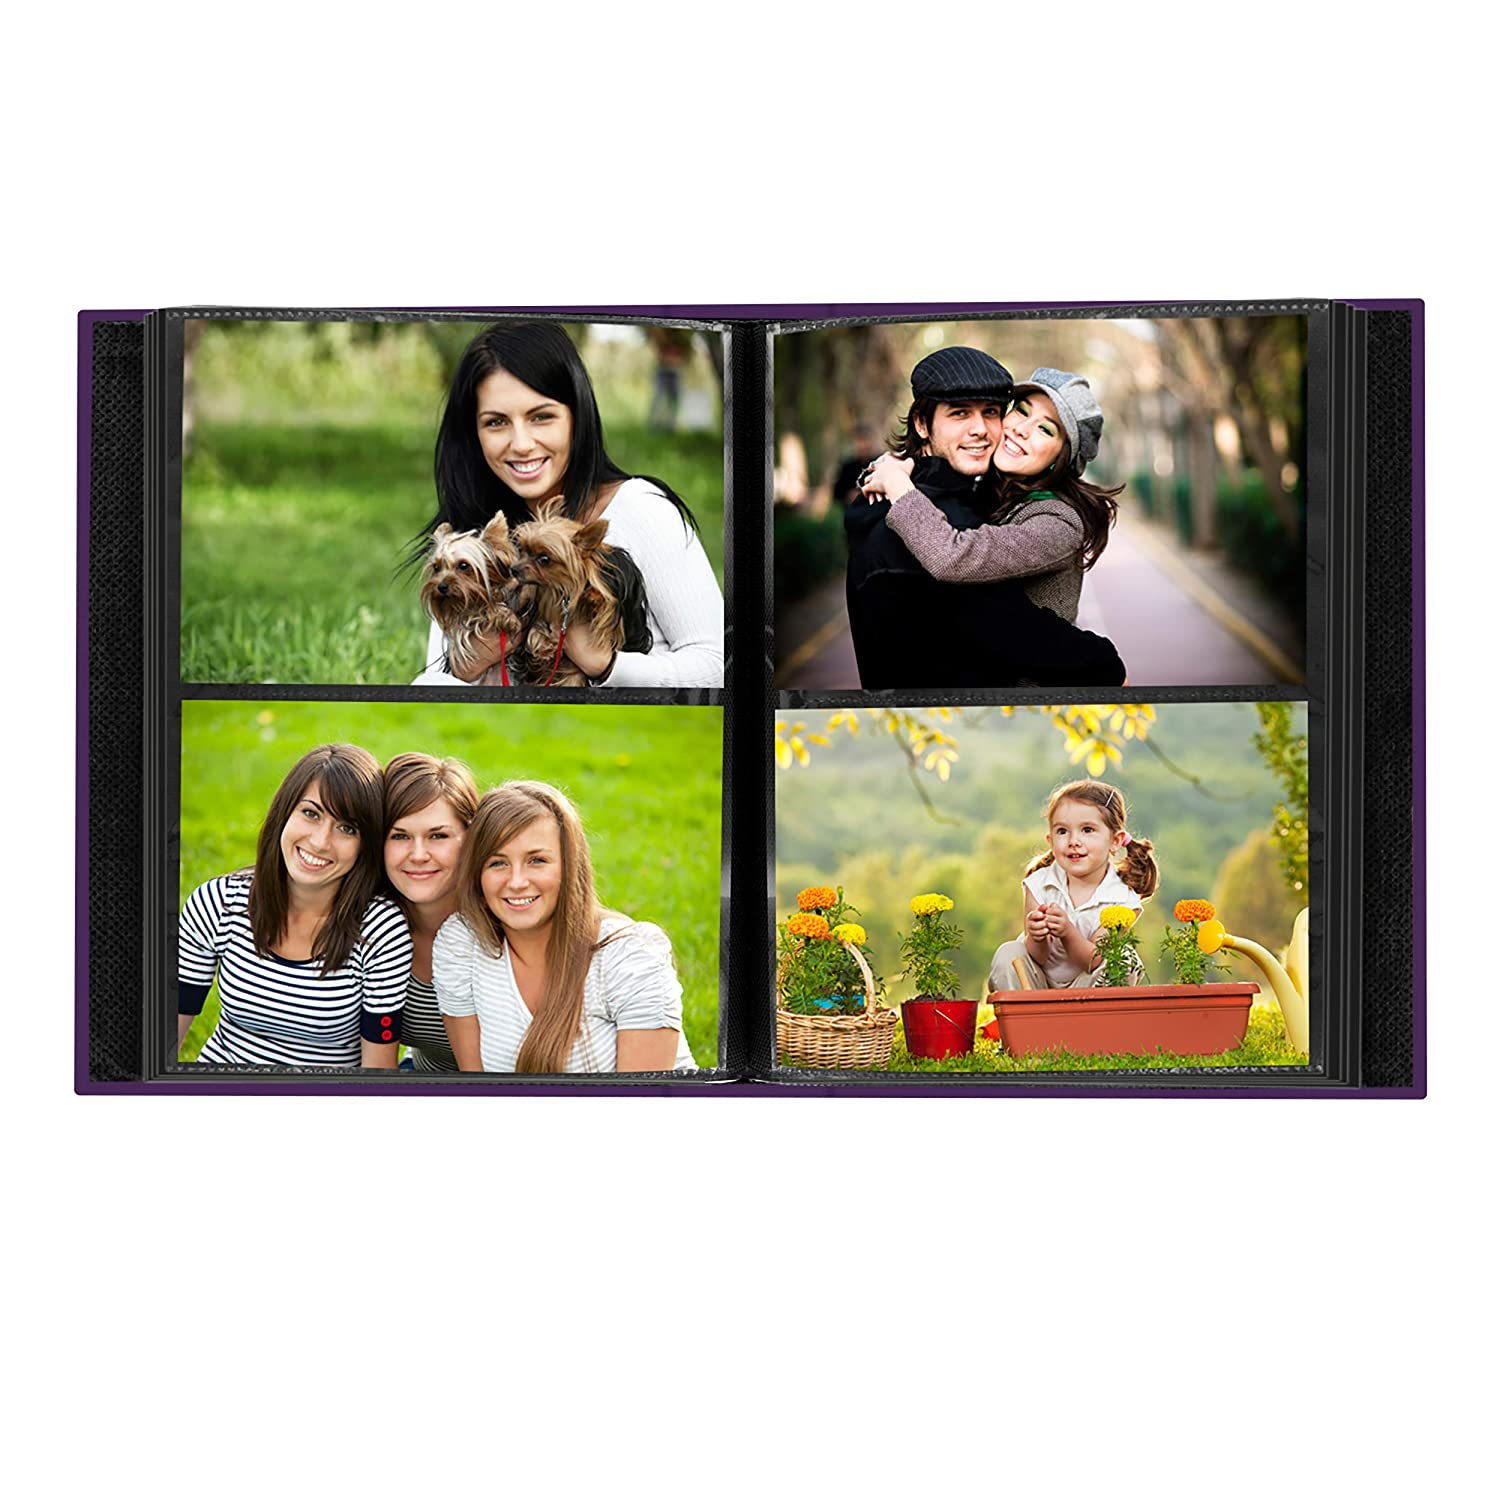 Pioneer Photo 208-Pocket Bright Purple Sewn Leatherette Photo Album with Silvertone Metal I.D Plate for 4 by 6-Inch Prints